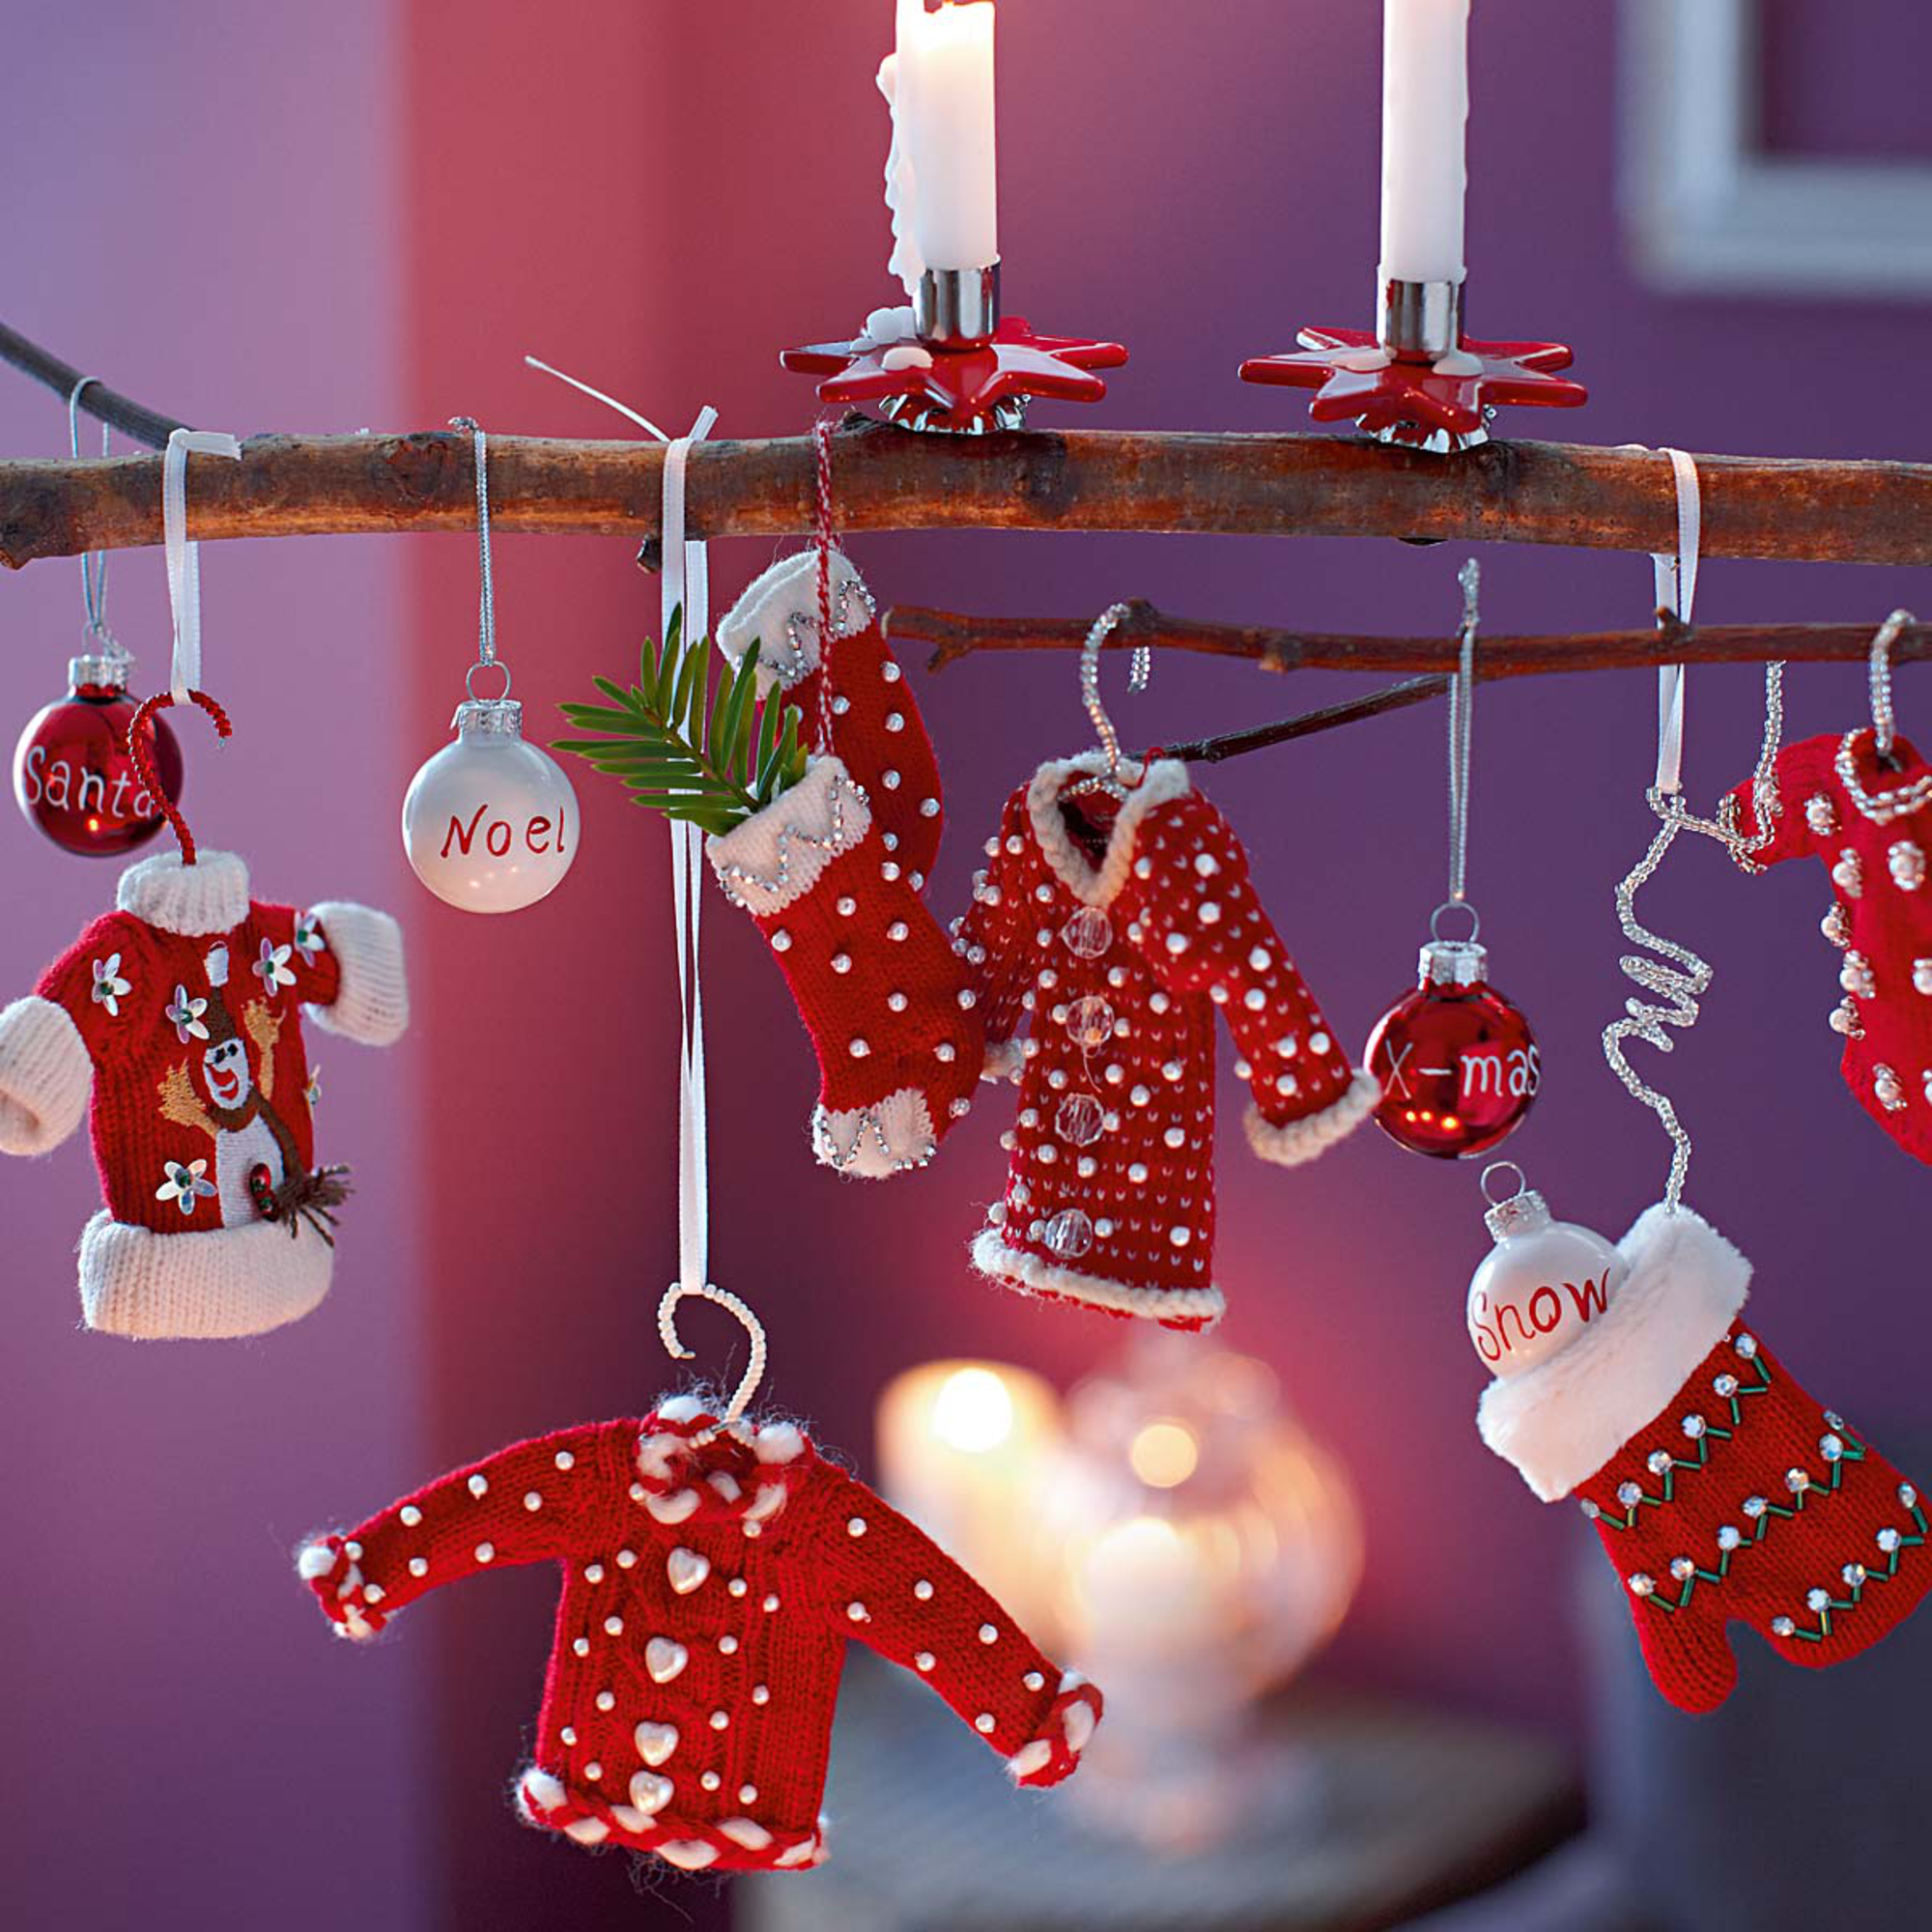 Christmas Decorating Ideas - Home Bunch - An Interior Design ...